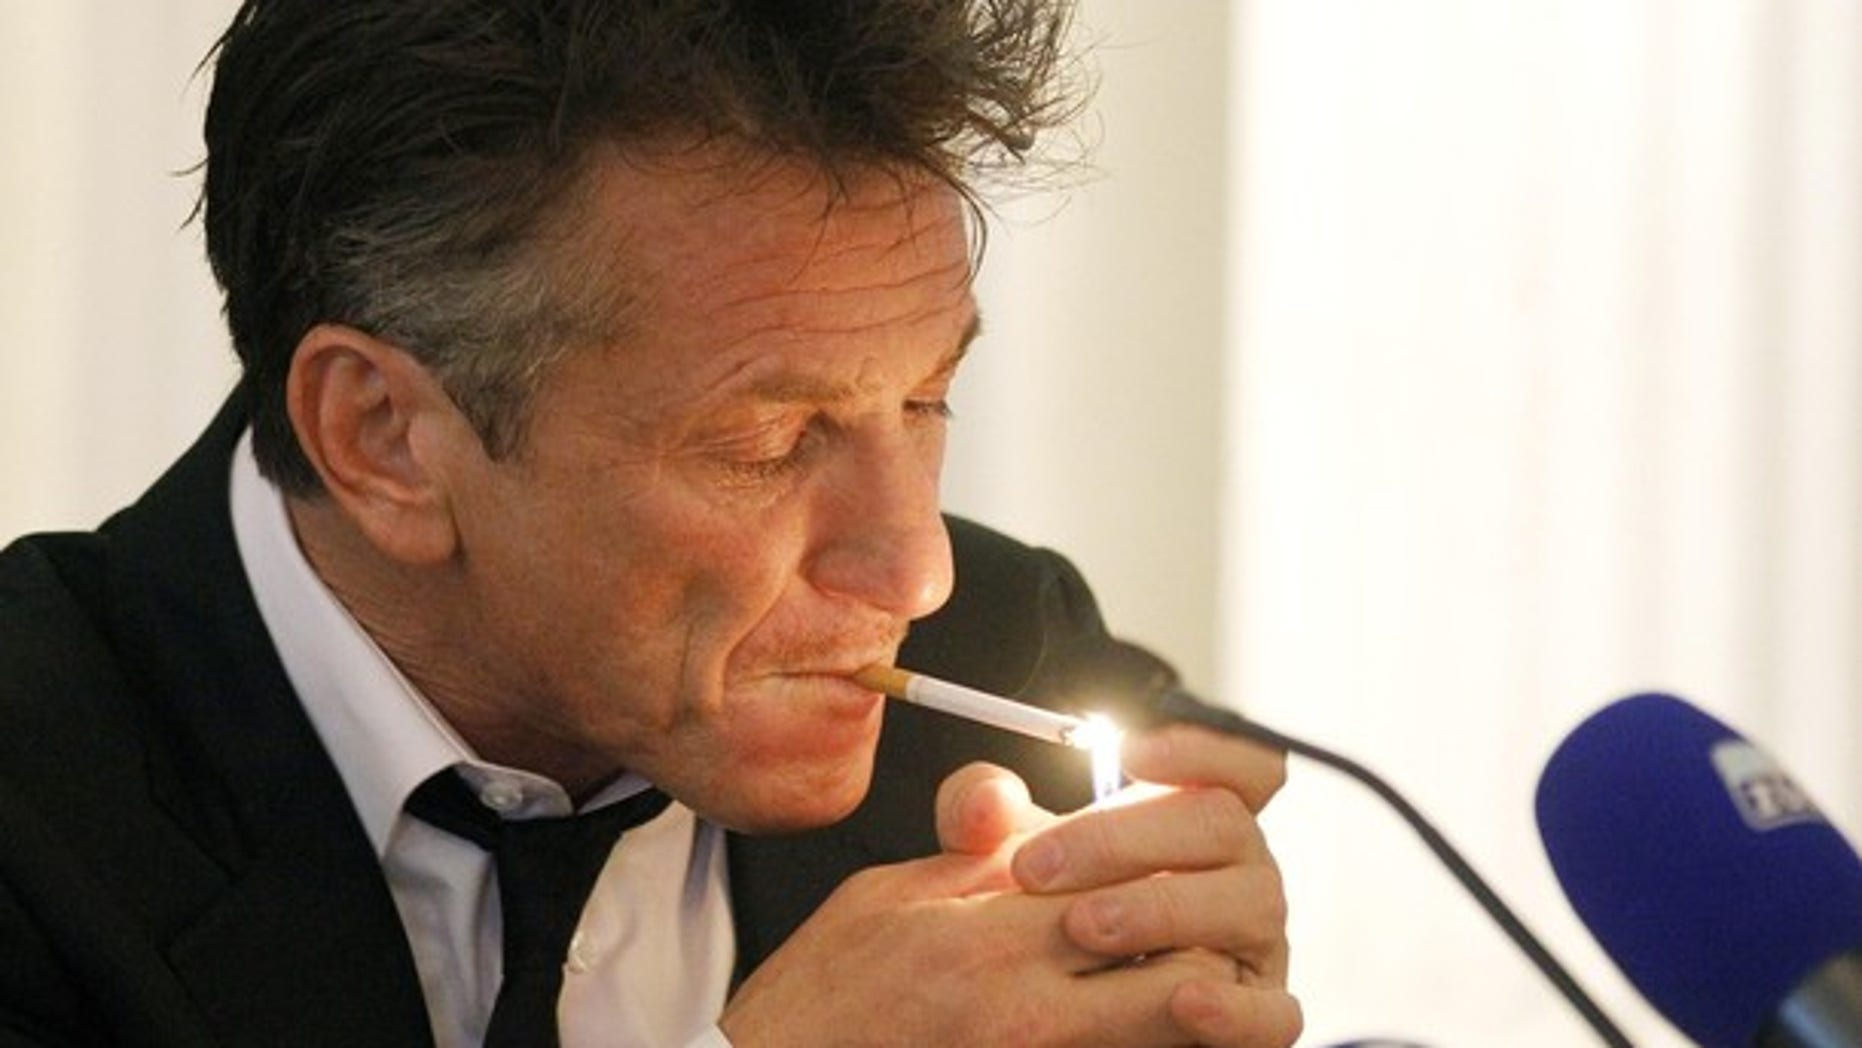 U.S. actor and director Sean Penn lights a cigarette during a news conference at the Zurich Film Festival in Zurich September 28, 2011.